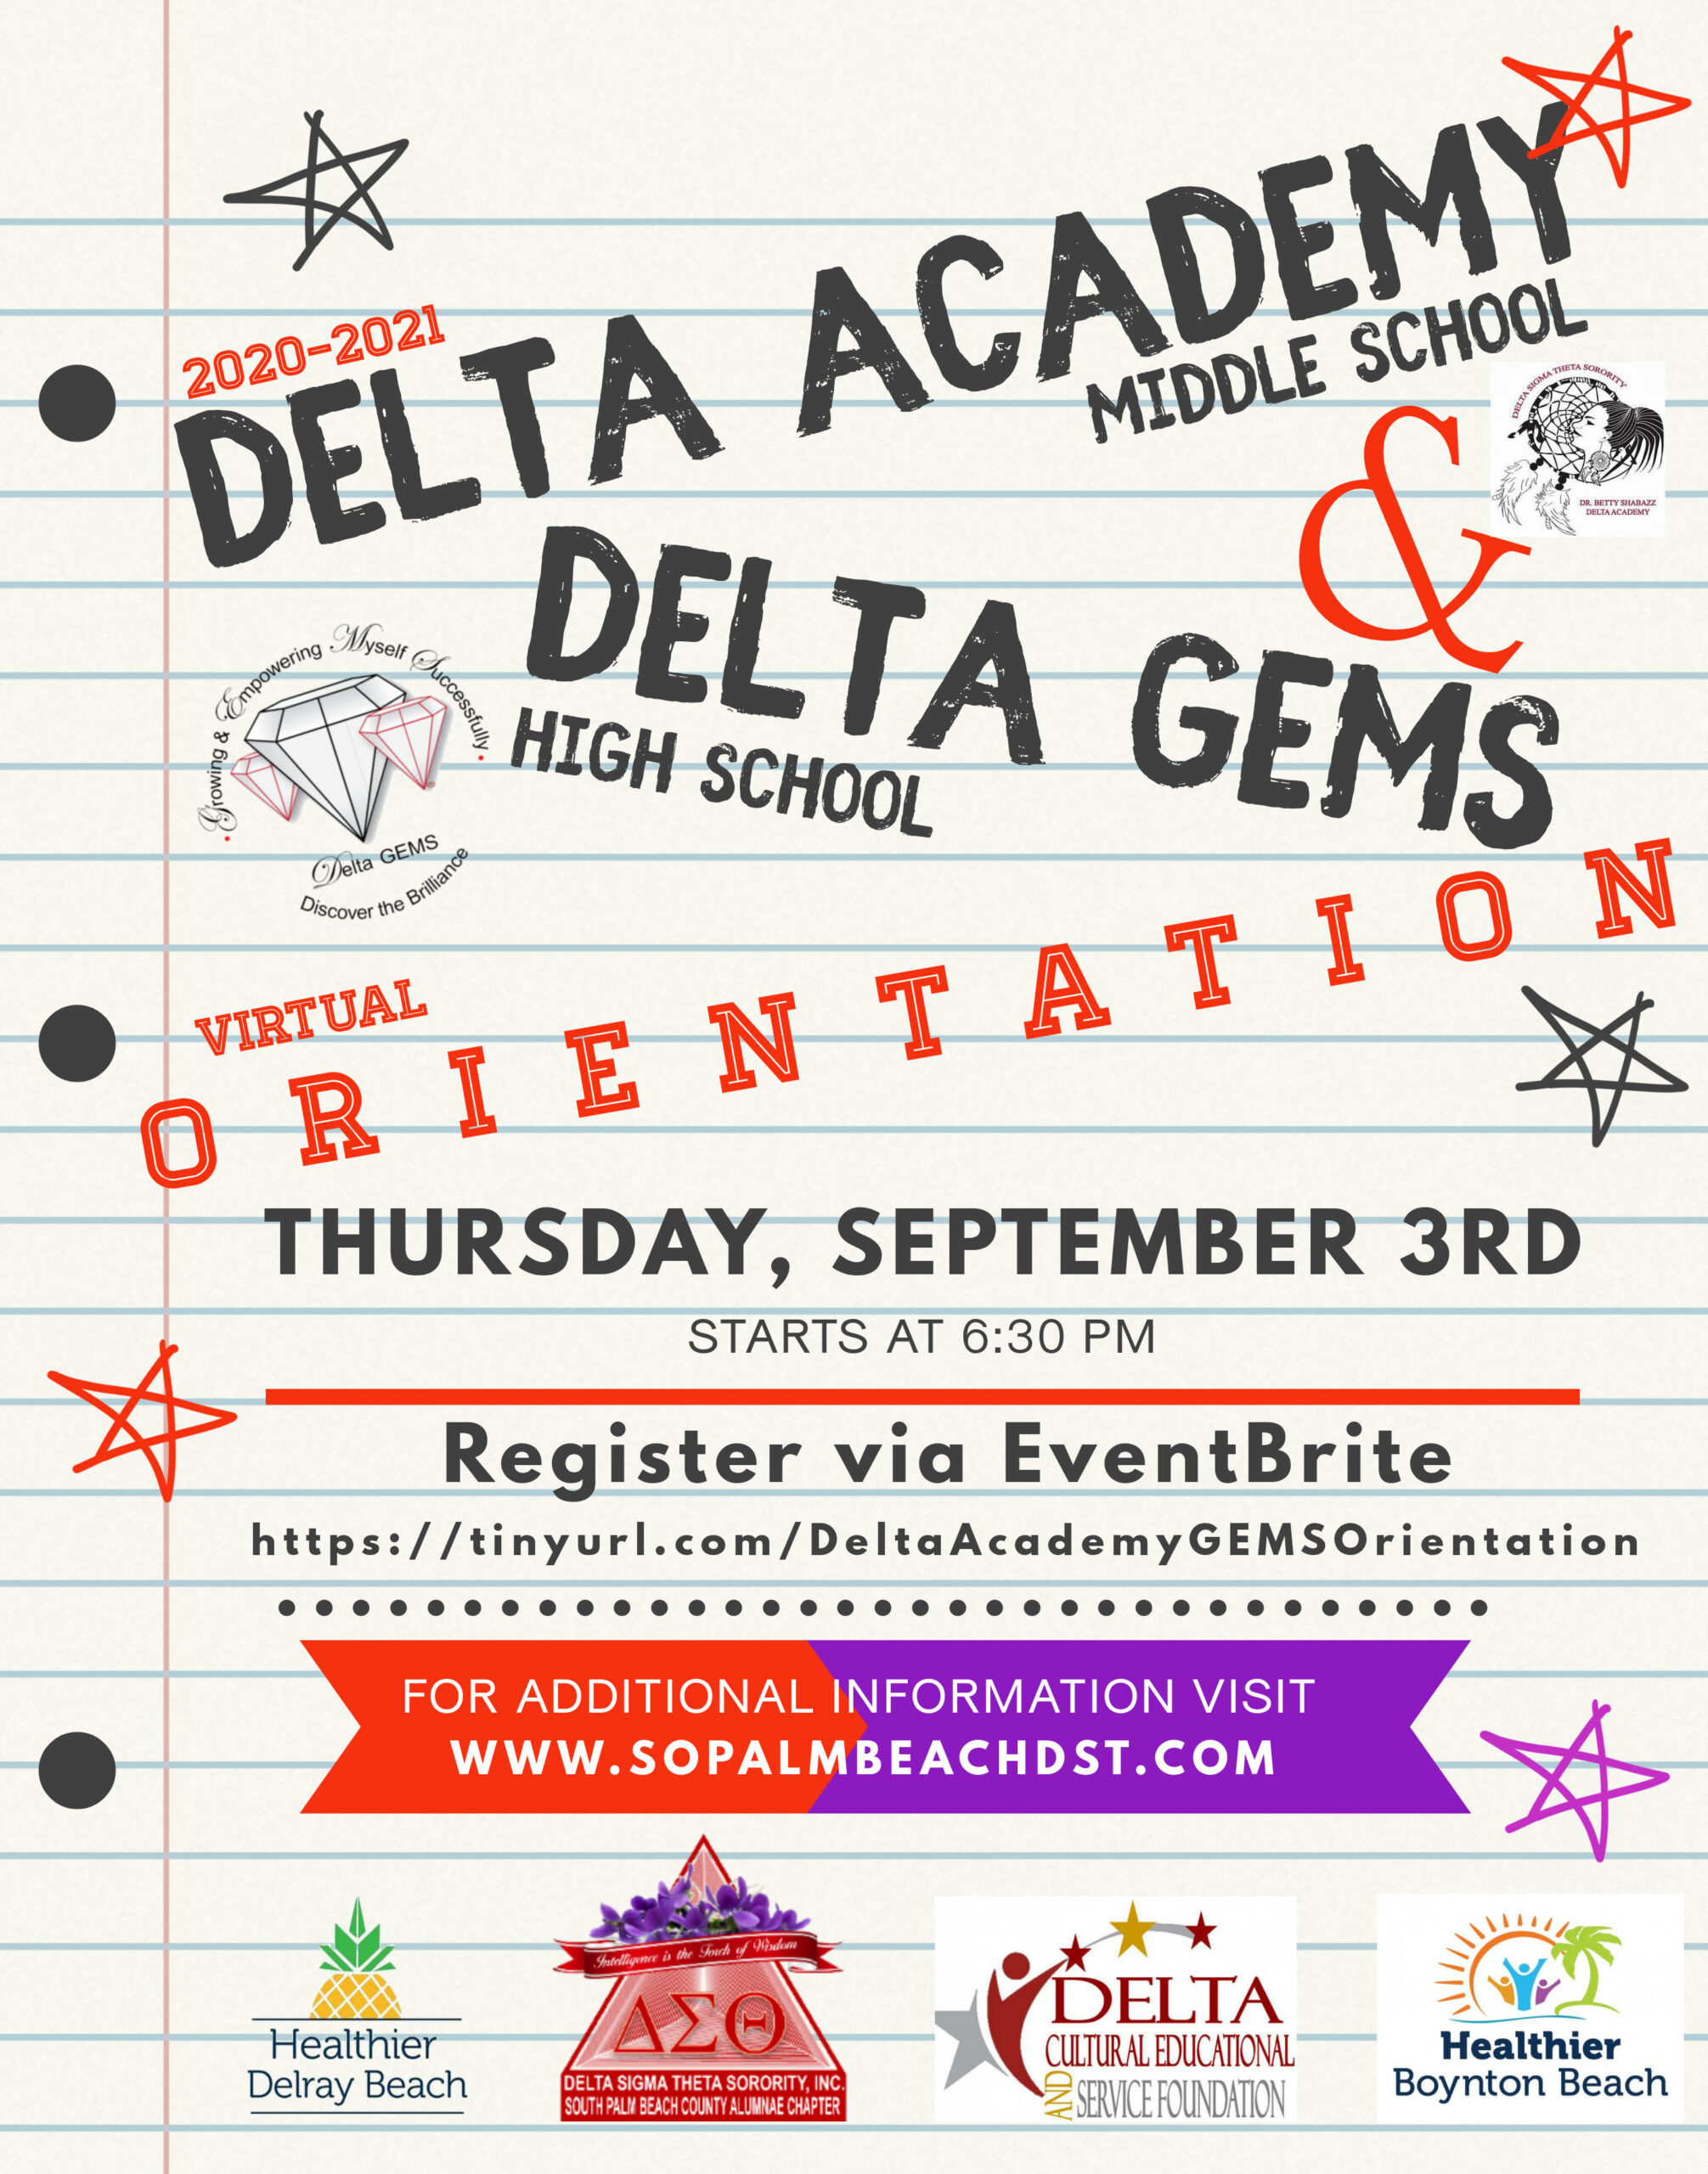 2020-2021 Delta Academy – Delta GEMS Application Available